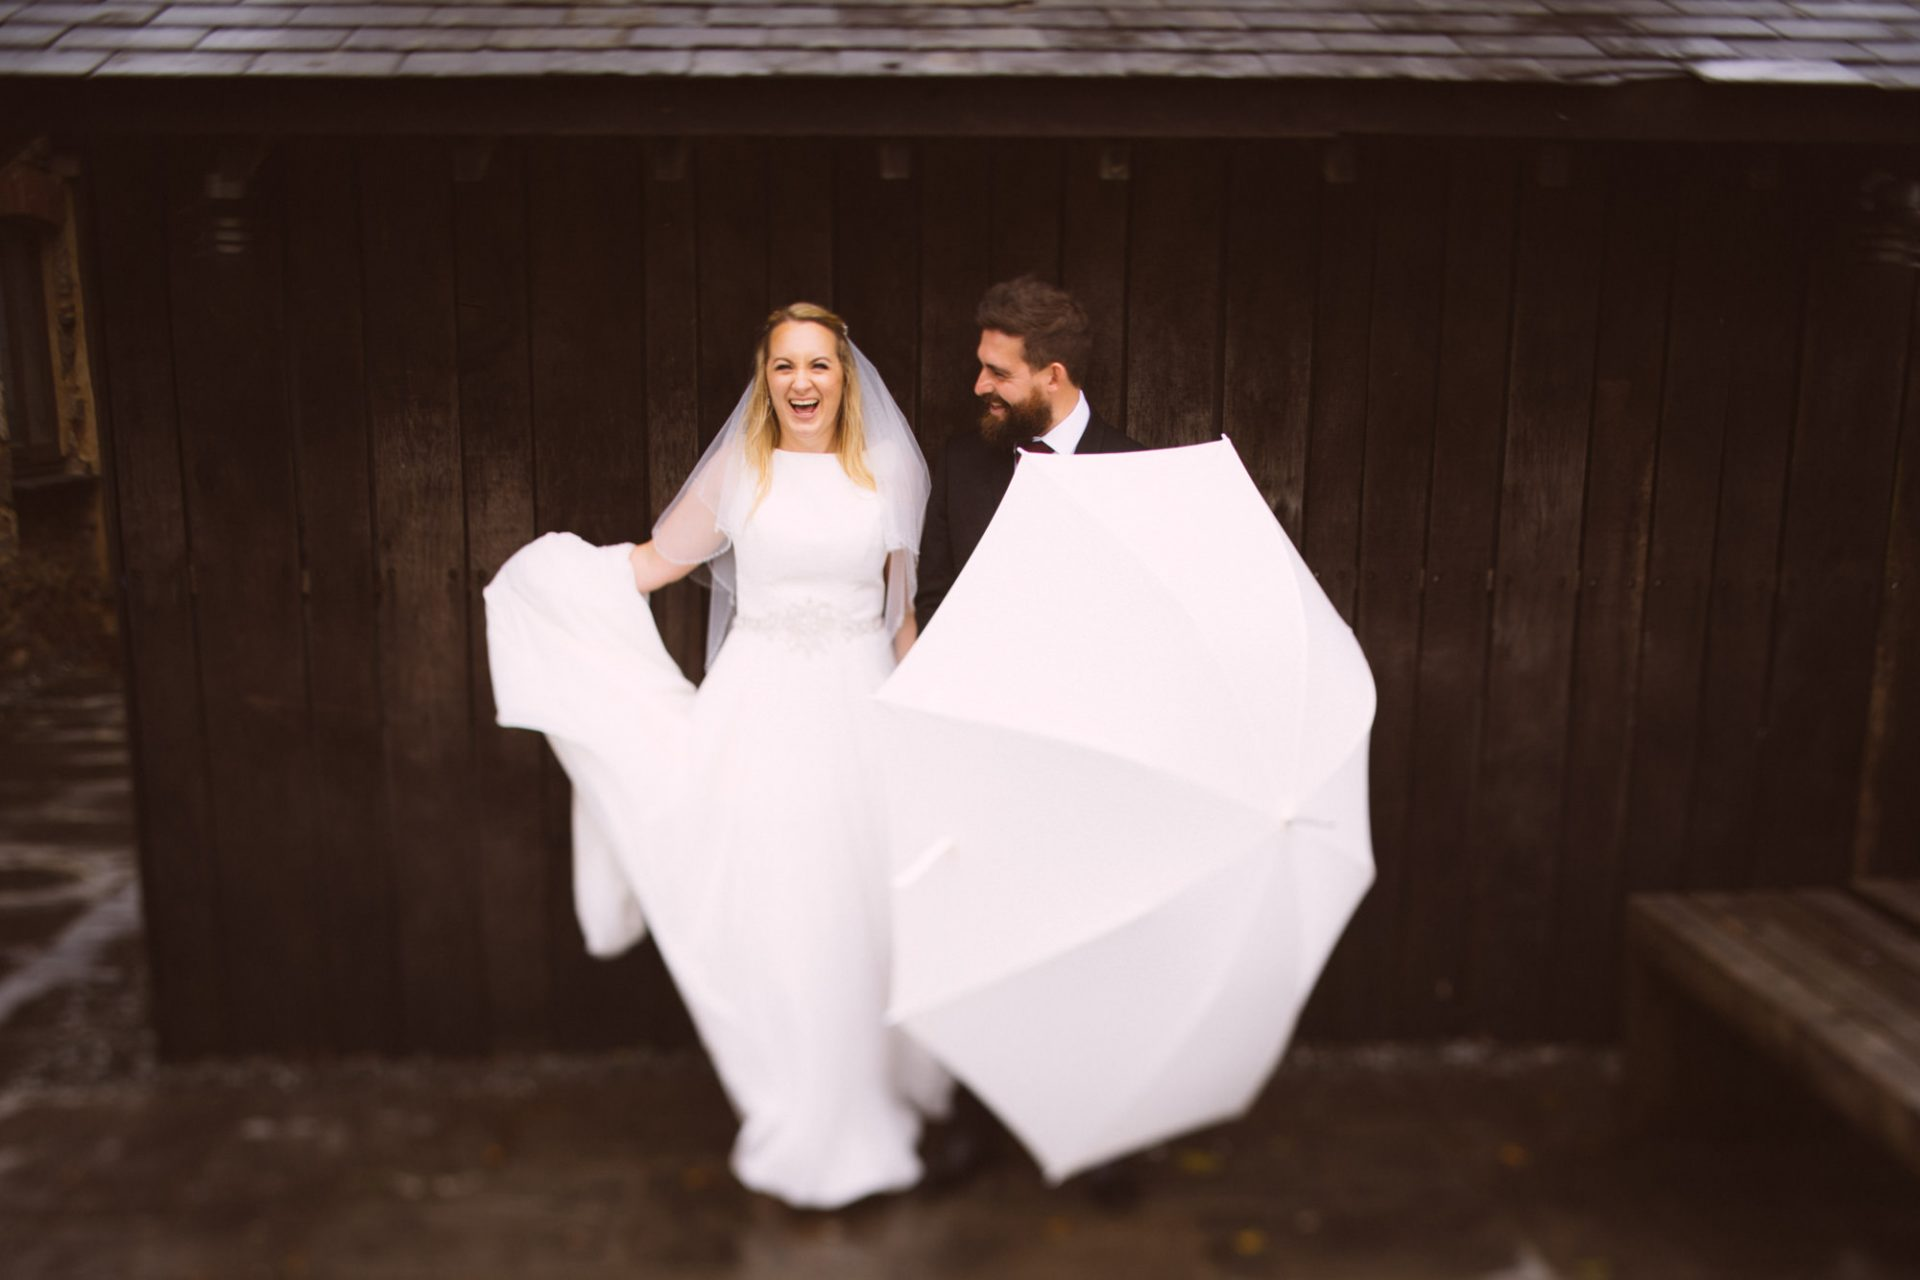 The Bride and Groom having fun at Trevenna Barns in Cornwall reviewed on The Journal page at Leo Sharp Photography